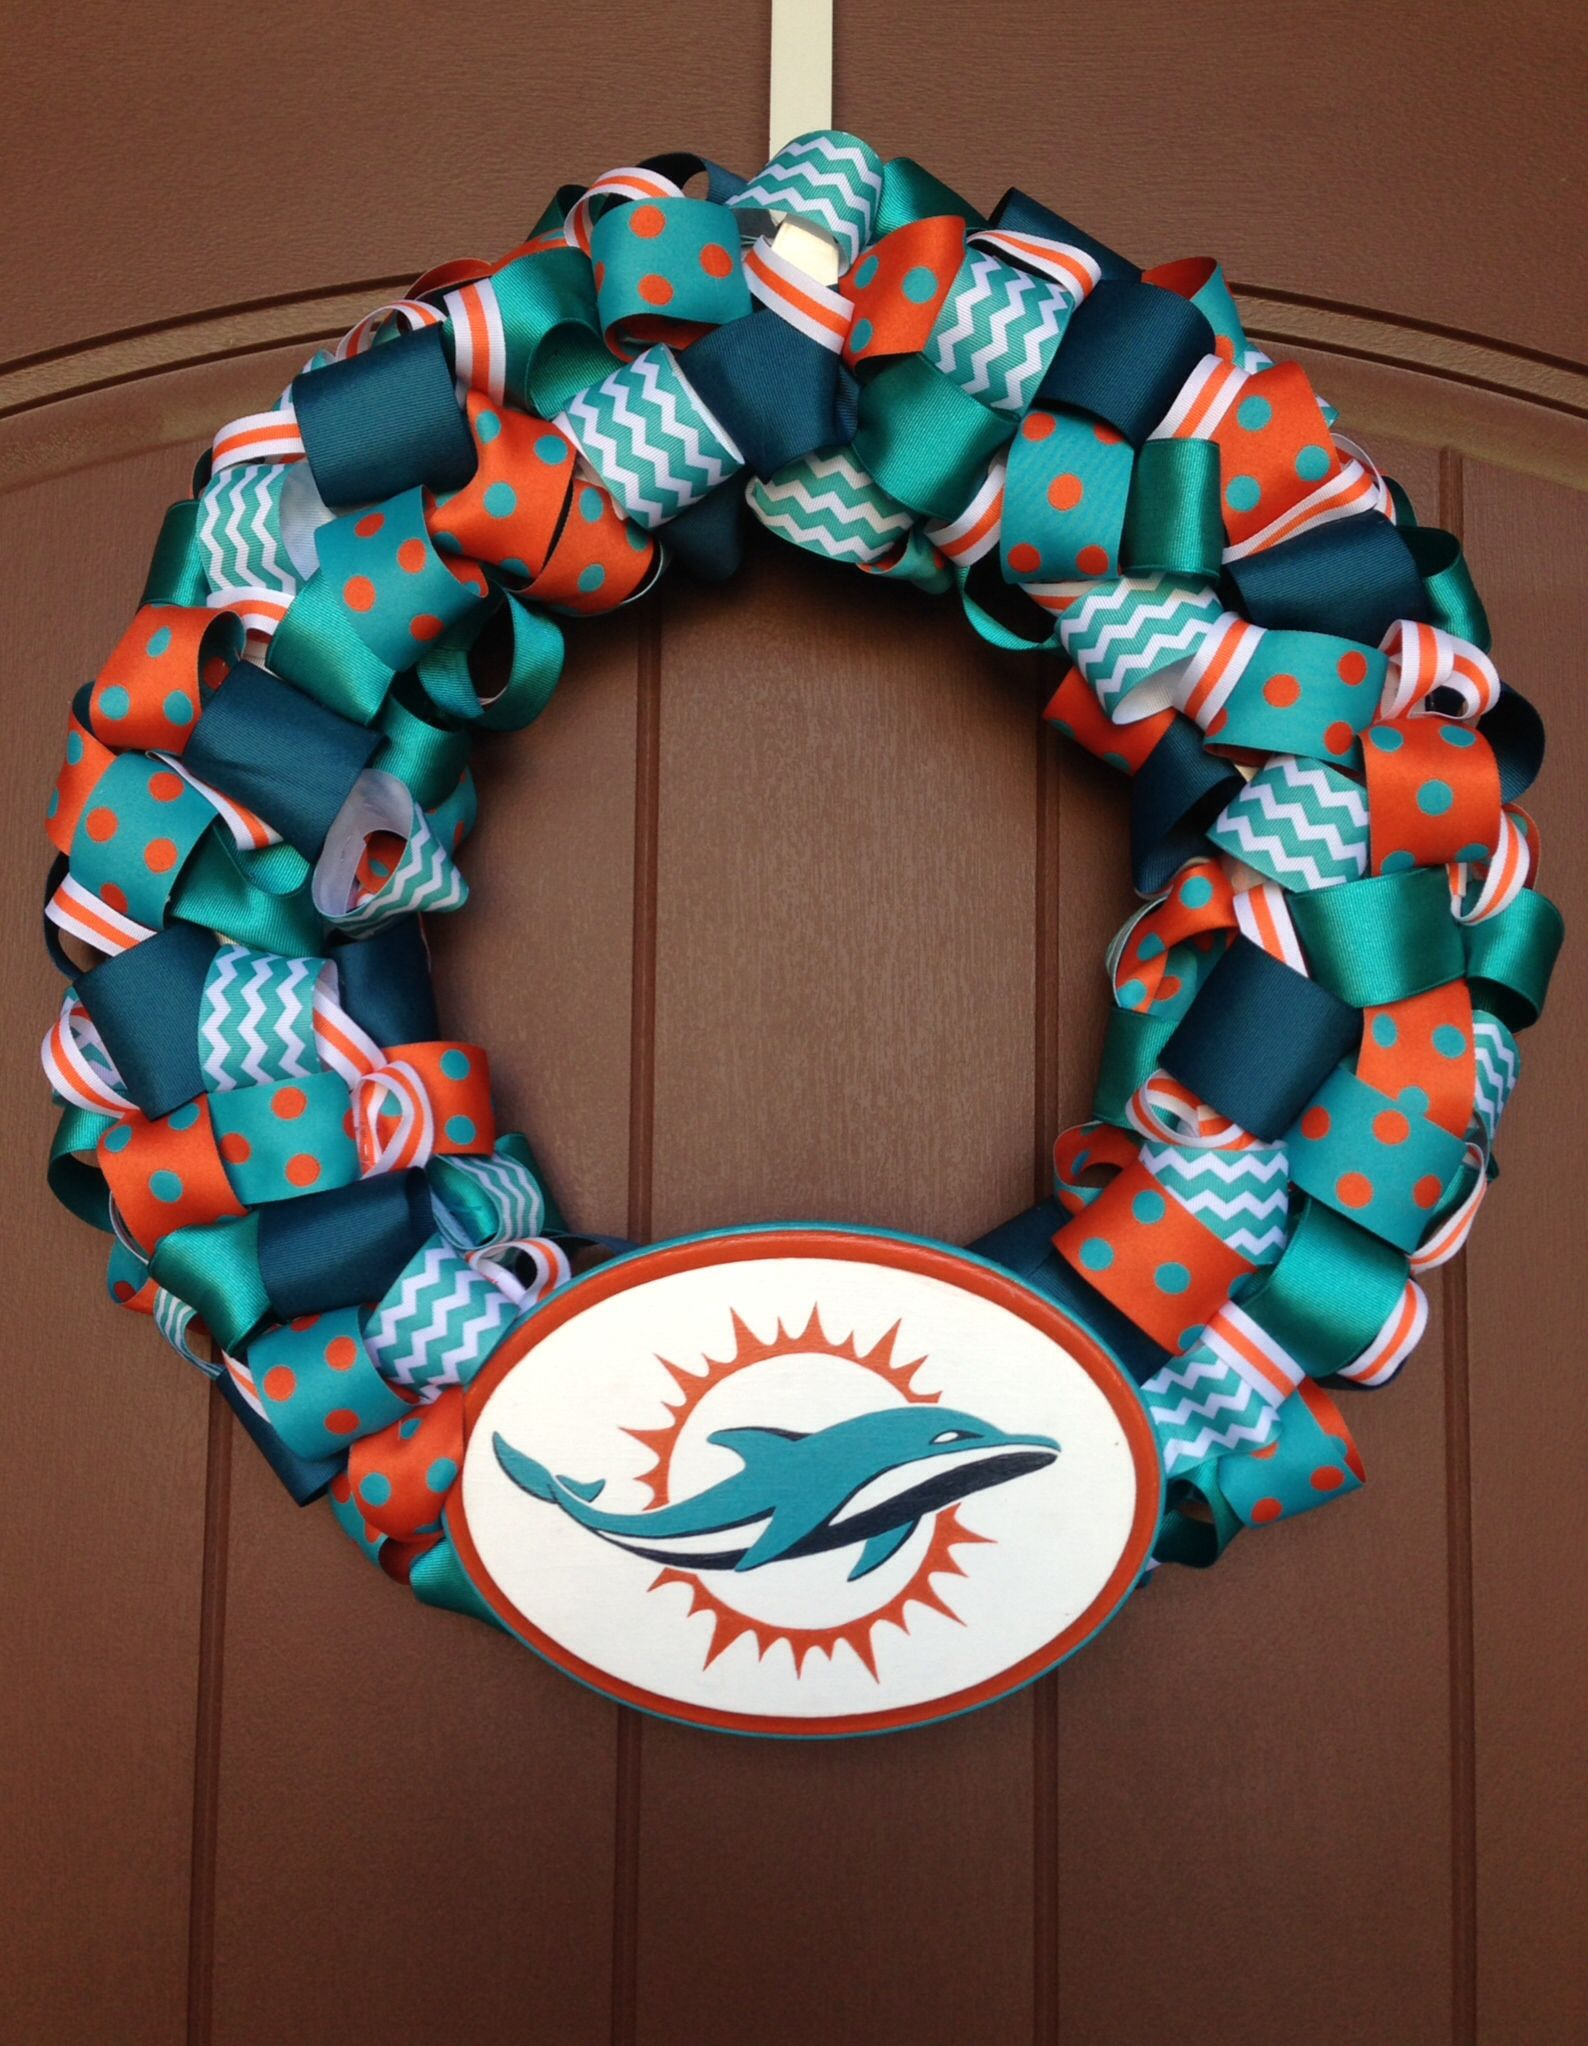 crafts ideas pinterest miami dolphins ribbon wreath with painted team logo 1766